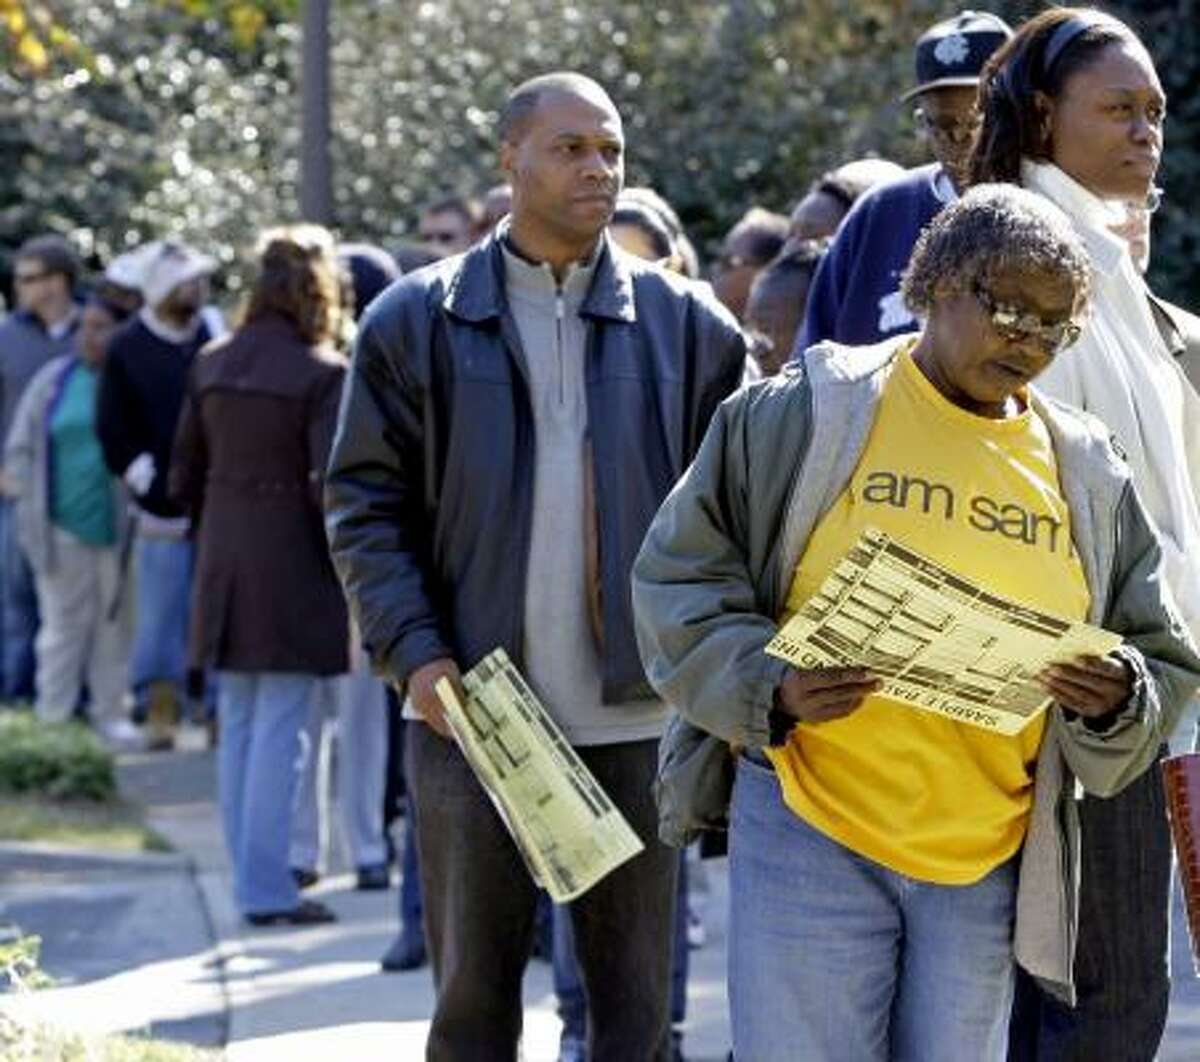 Voters in Charlotte, N.C., stand in line at an early voting site Thursday morning.